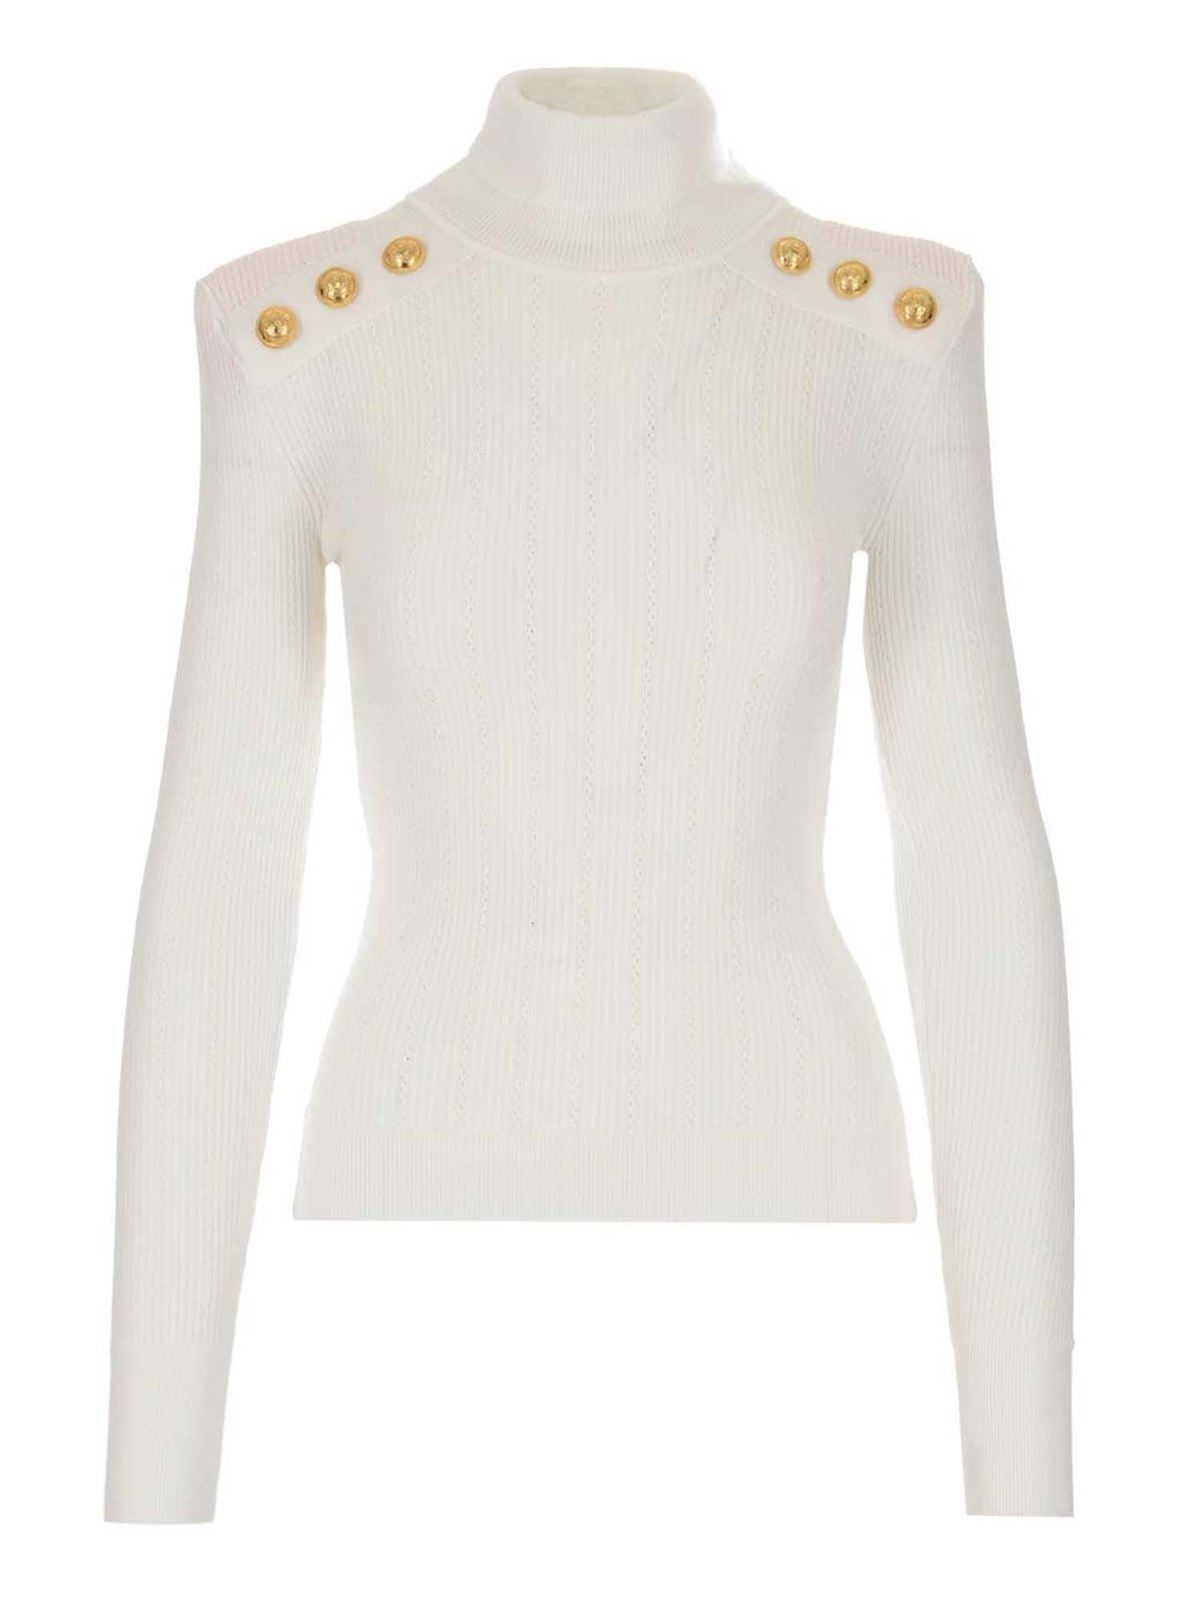 Balmain Buttons Sweater In White